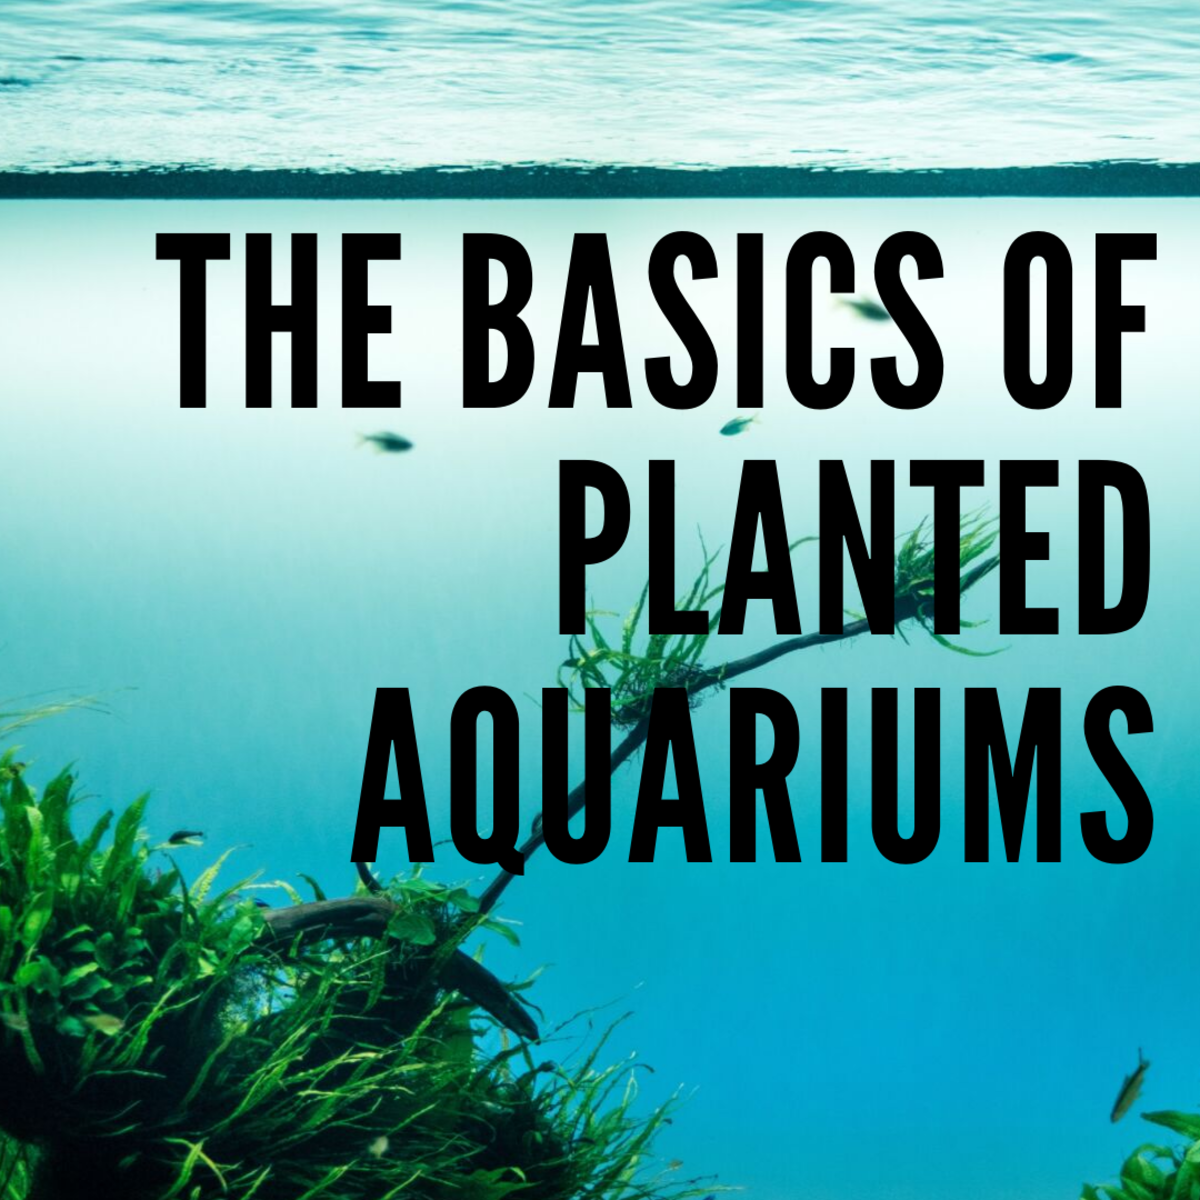 The Basics of a Planted Aquarium